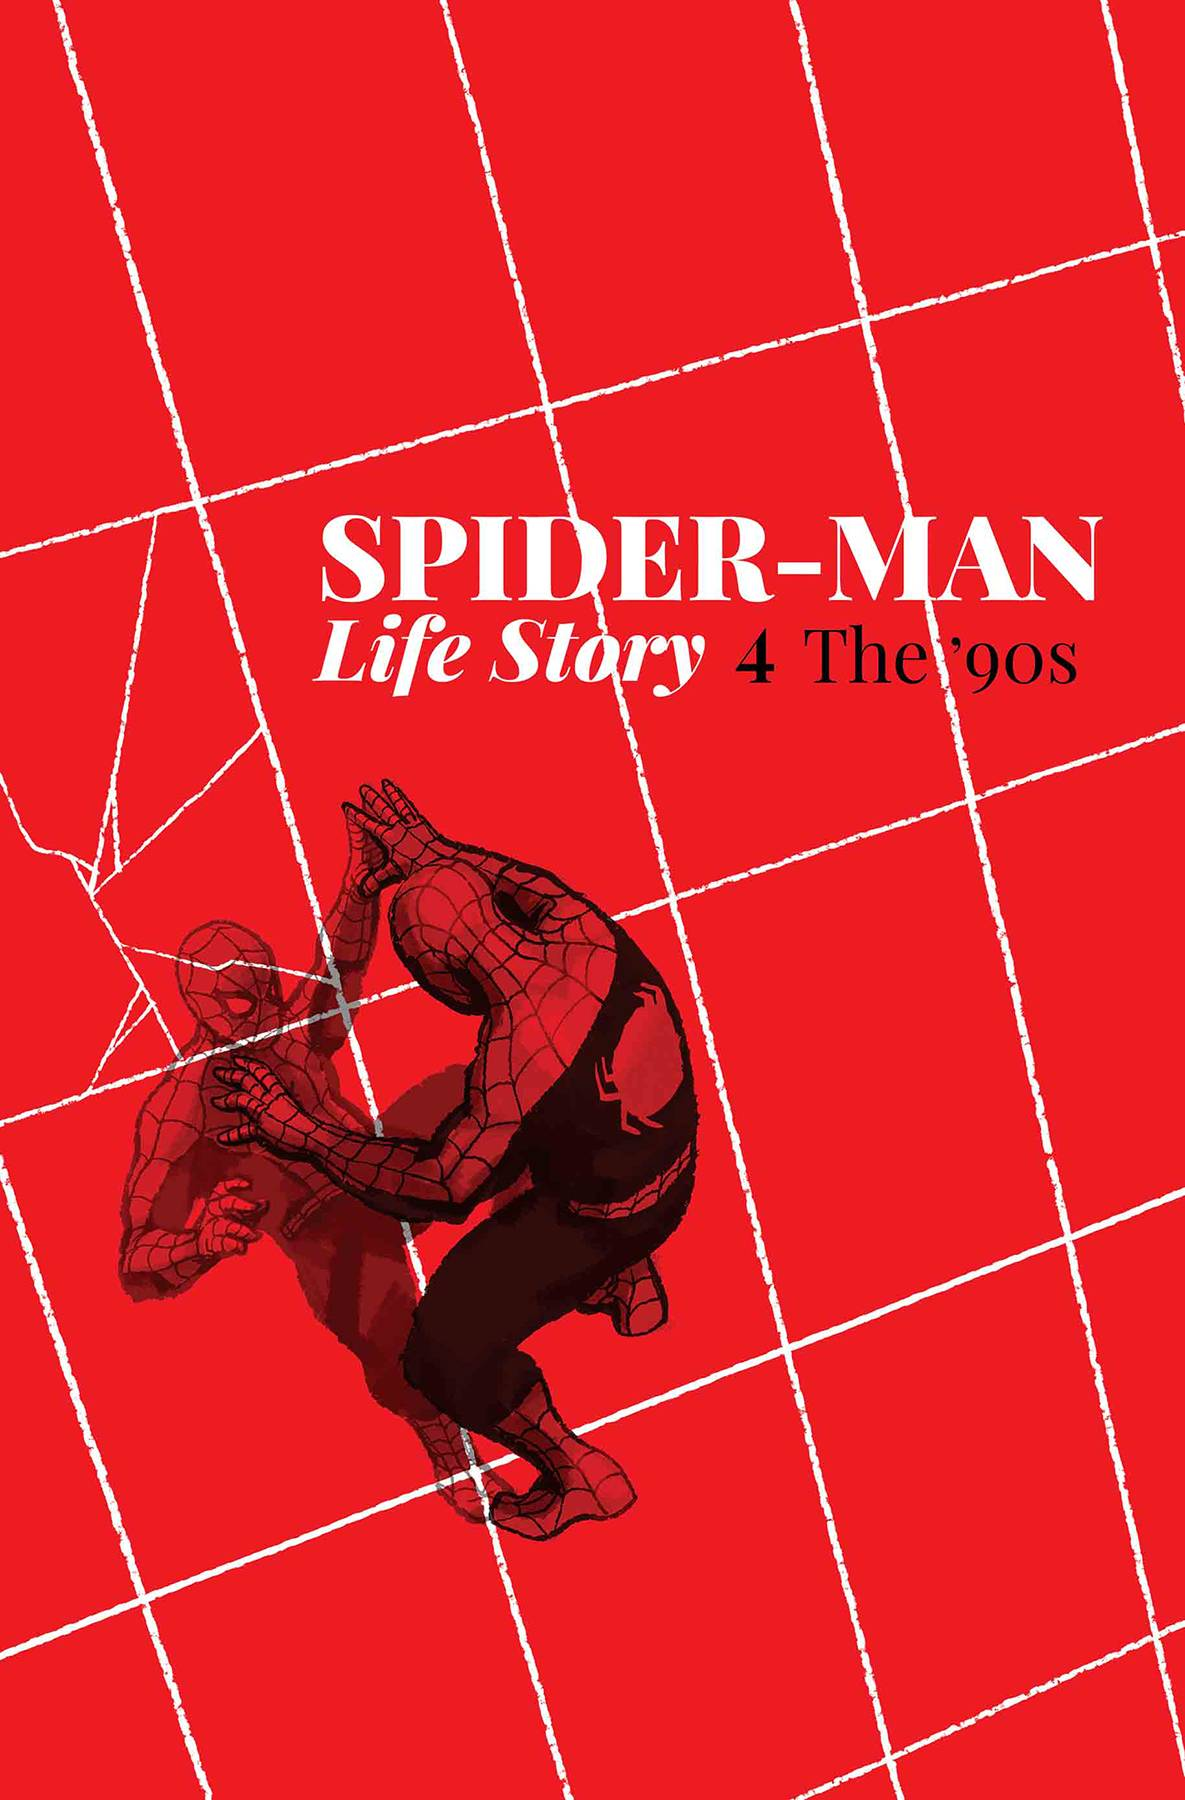 SPIDER-MAN LIFE STORY 4 of 6.jpg